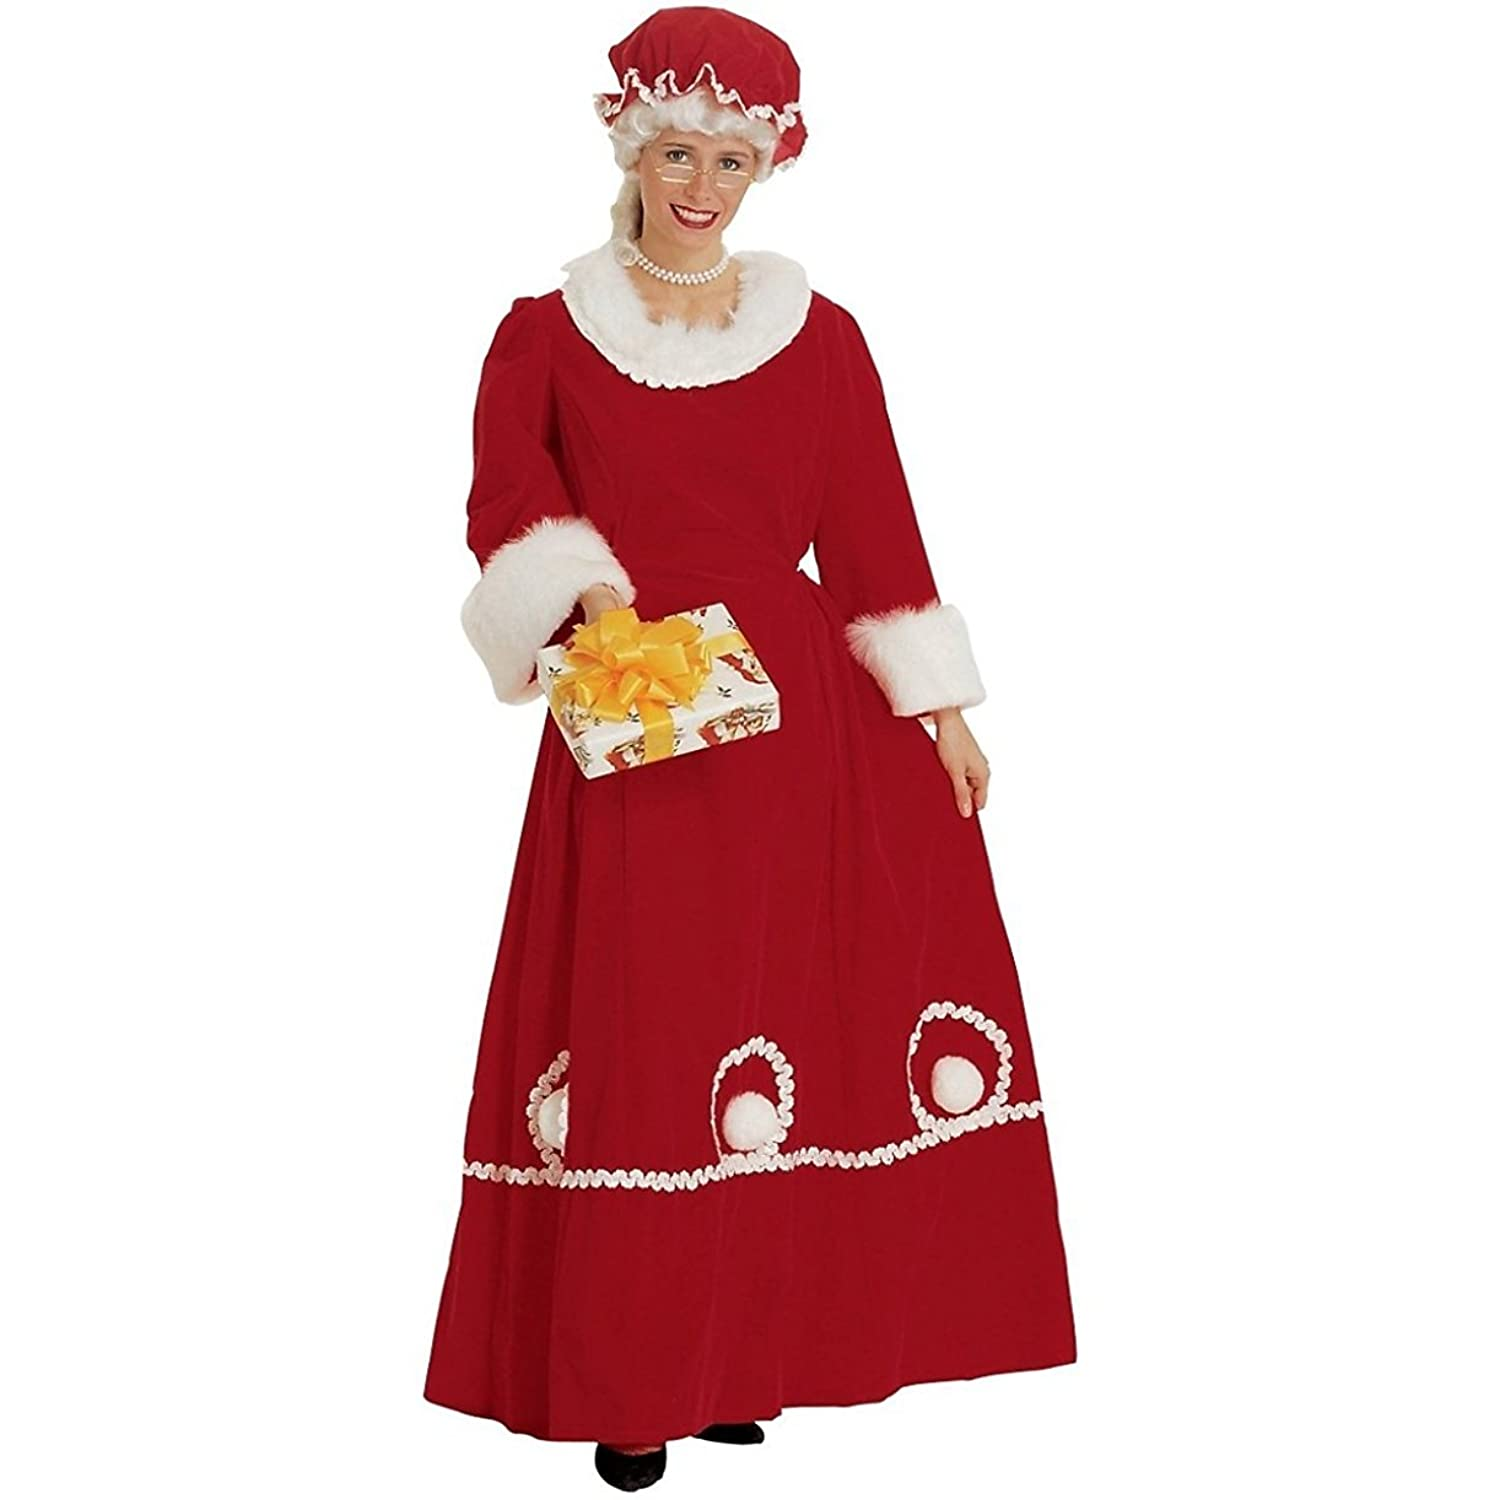 4437b0d229a Adult Mrs. Claus Costumes and Accessories | Deluxe Theatrical ...